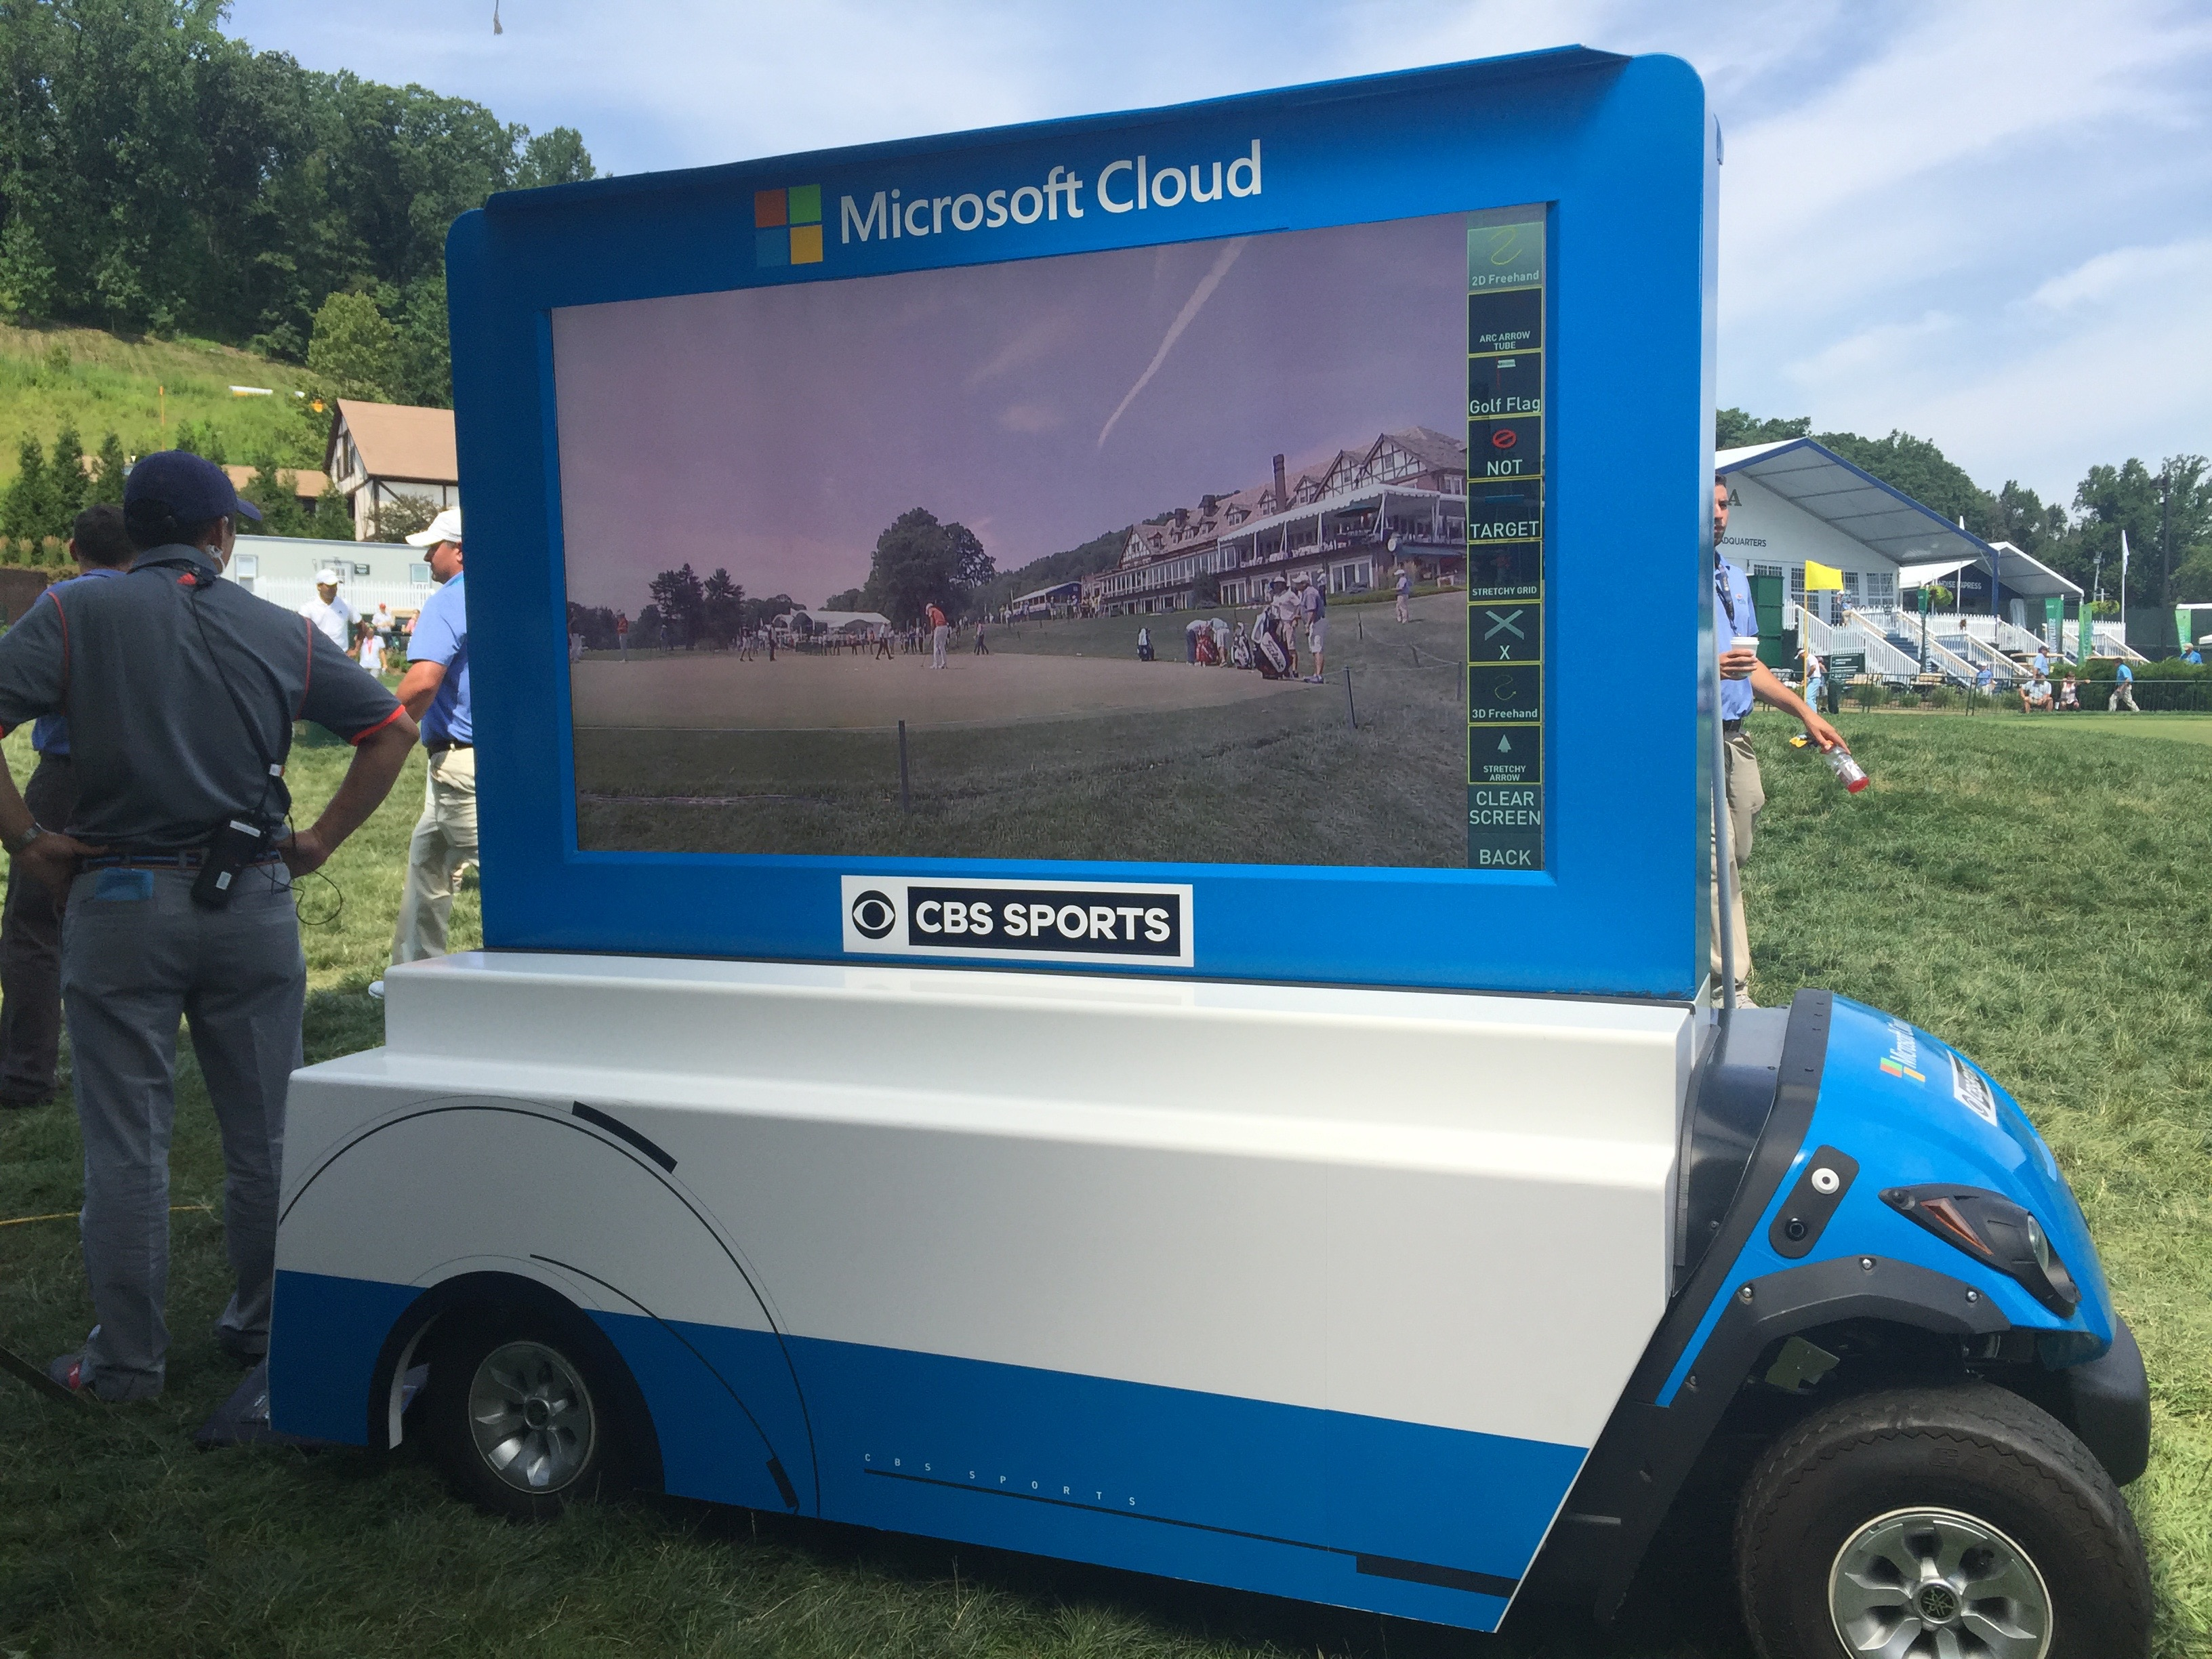 Live From PGA Championship: Graphics Reign as CBS and Turner